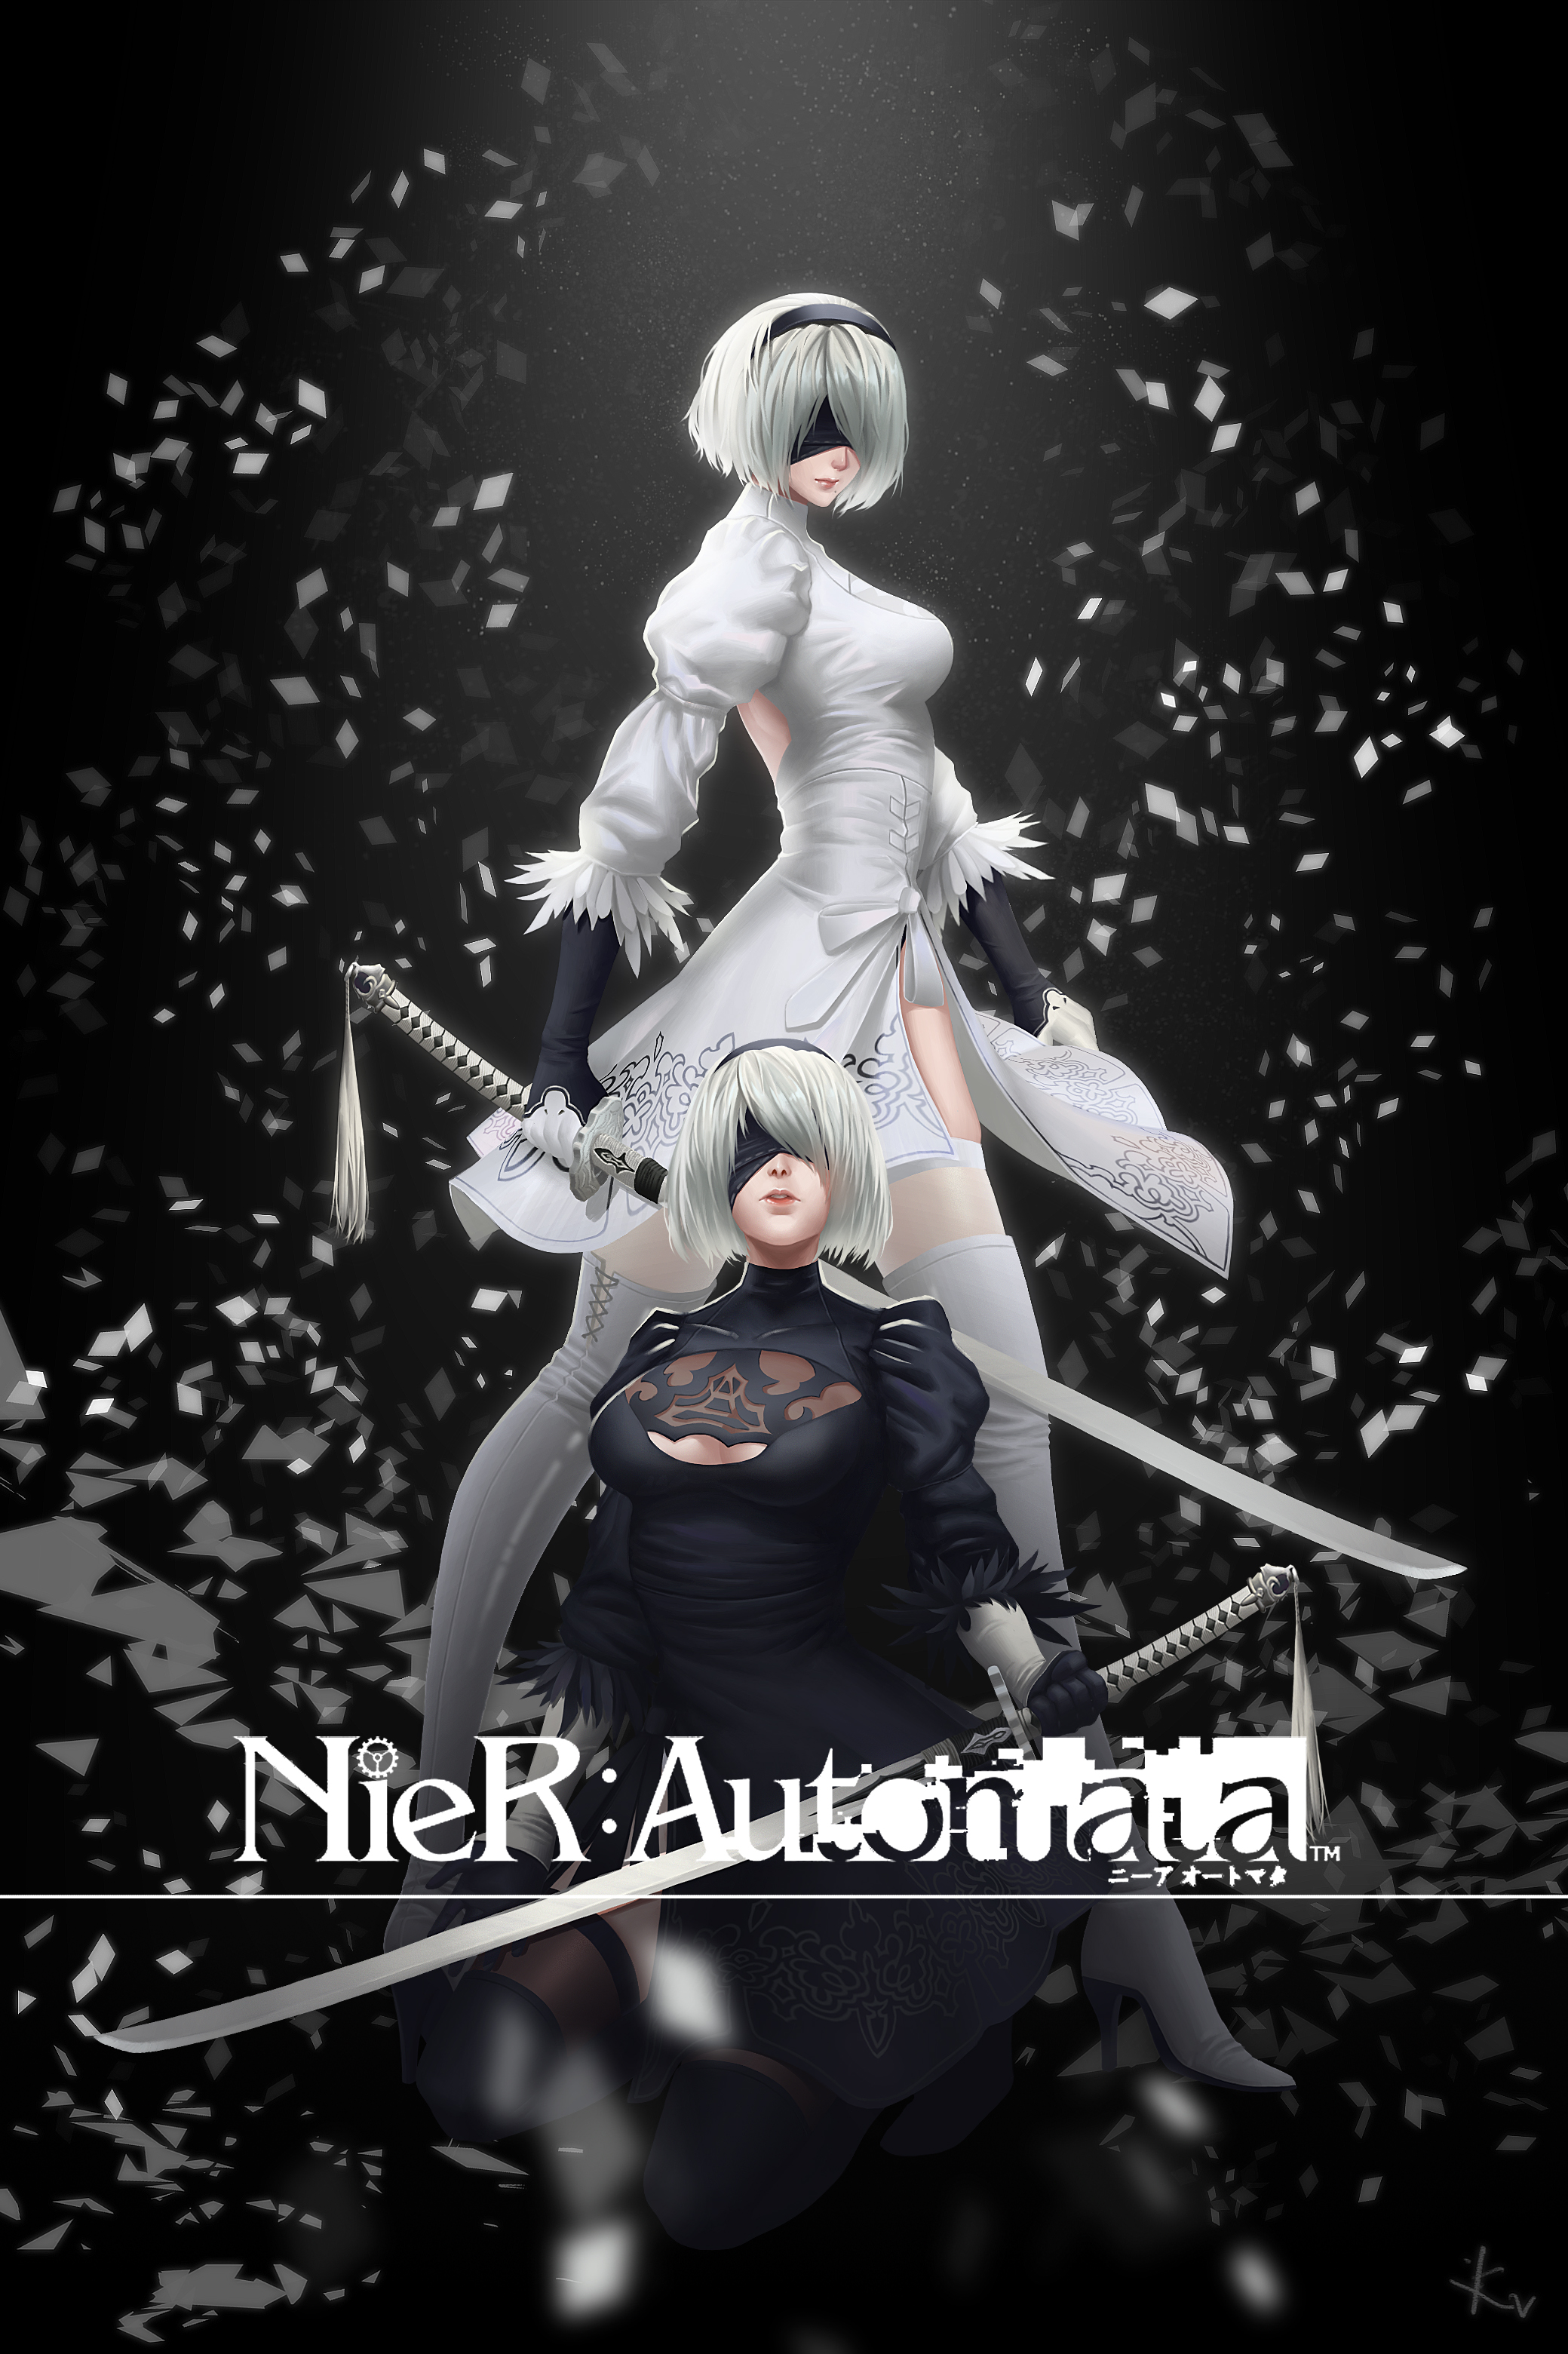 Anime 2079x3121 dress heels cleavage NieR Nier: Automata sword thigh-highs 2B (Nier: Automata)